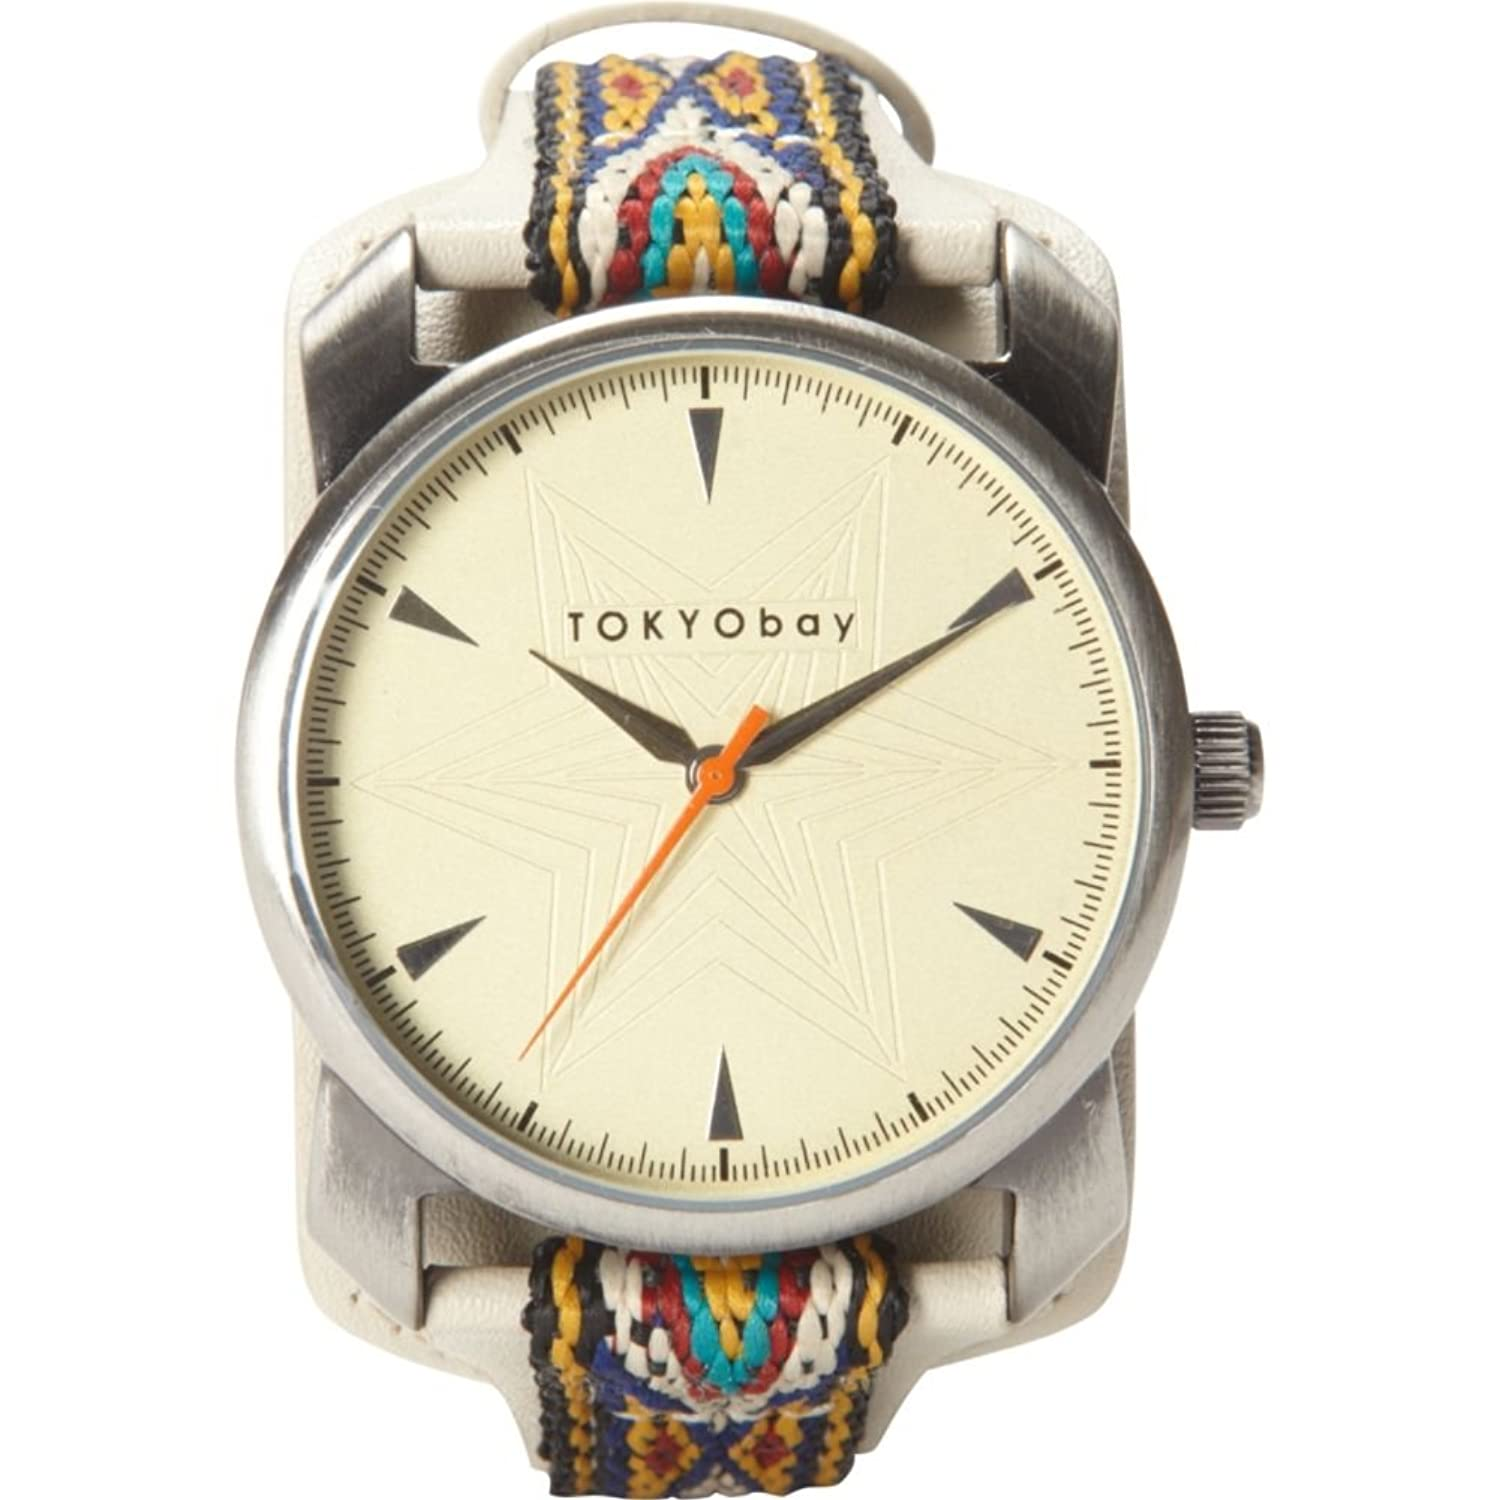 TOKYObay T020-BE Frauen Bunte Lederband Beige Dial ANATOLI Analog Watch